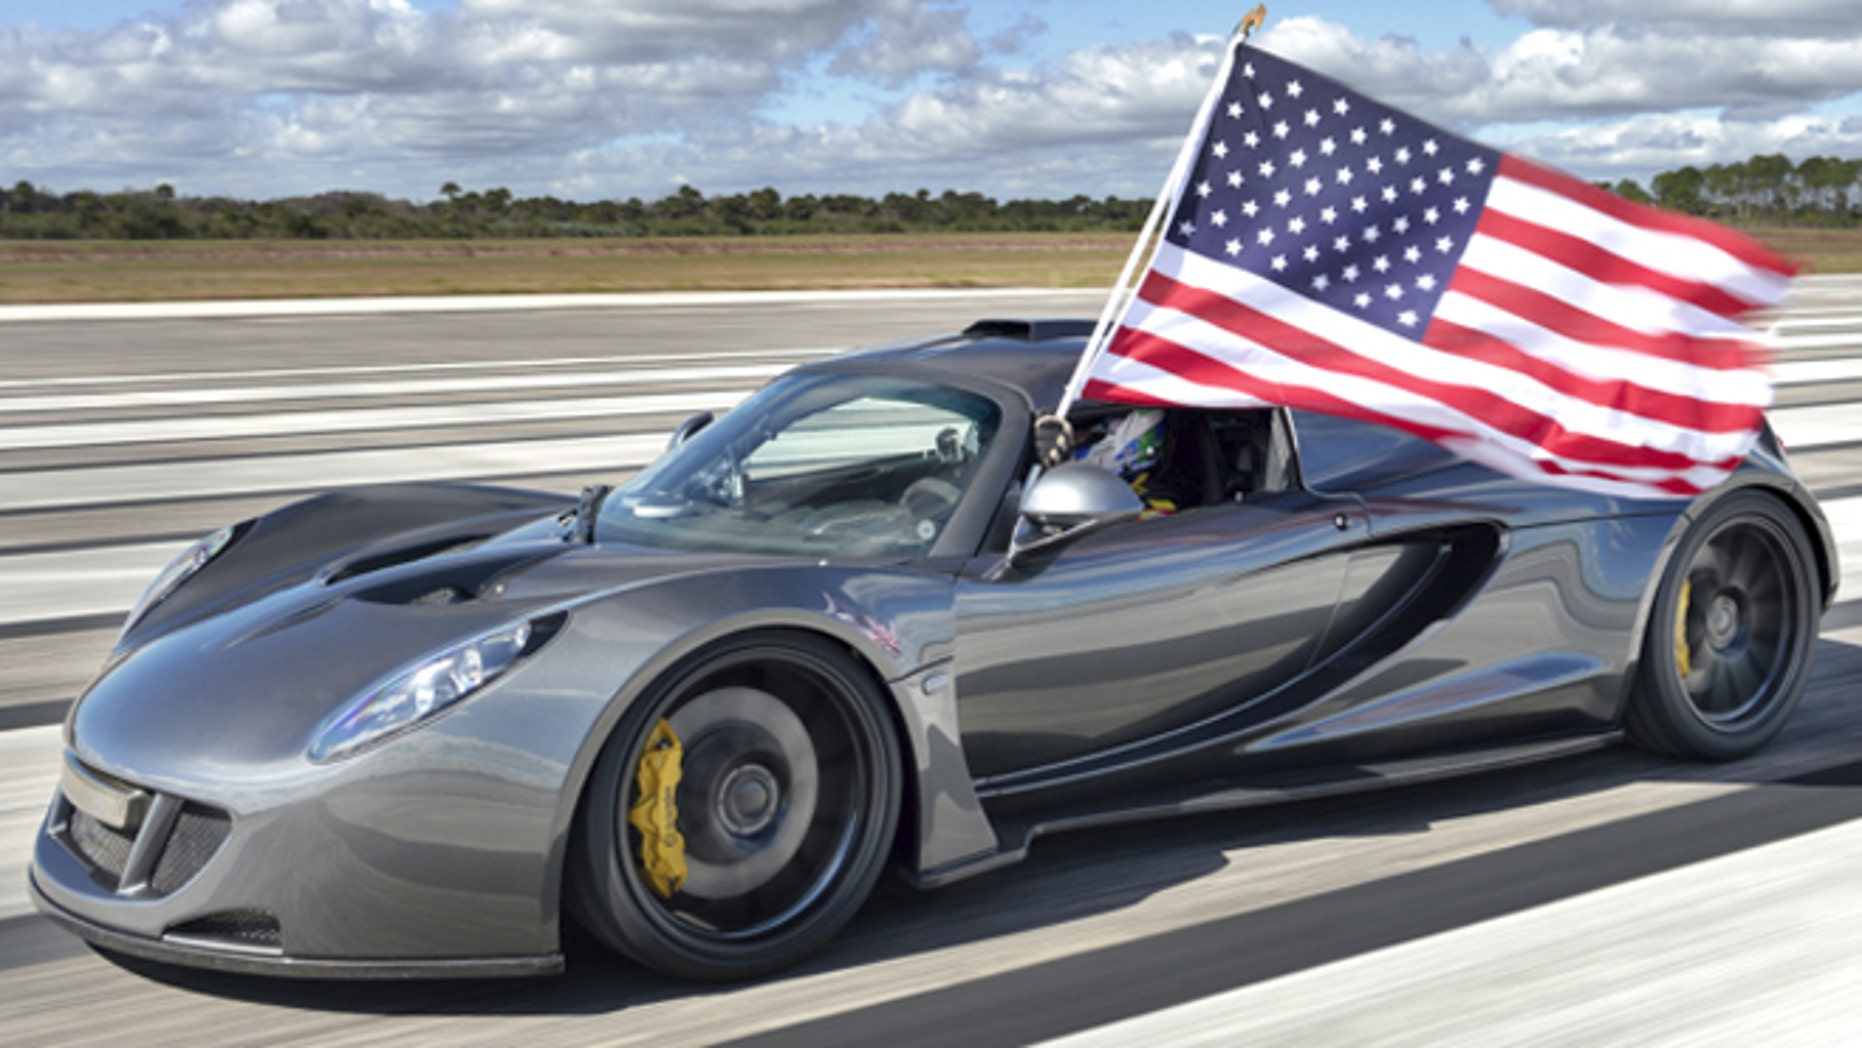 Hennessey Venom Gt Claims Top Sd Record For Usa At 270 Mph